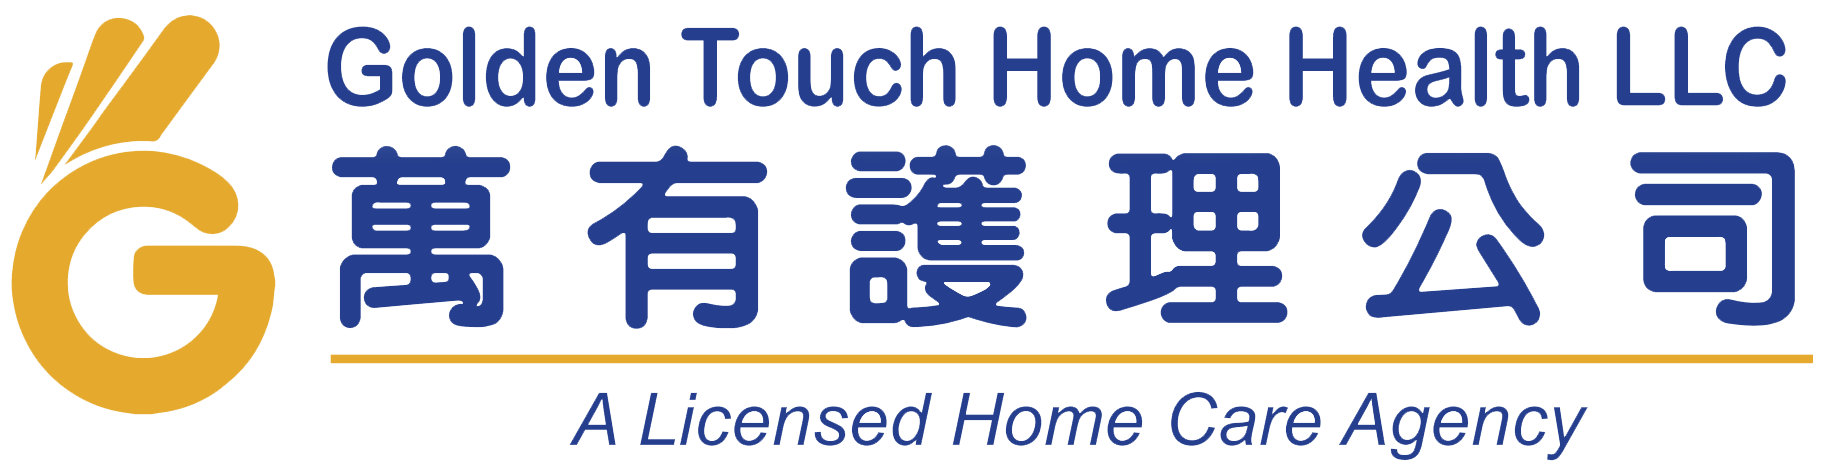 Golden Touch Home Health